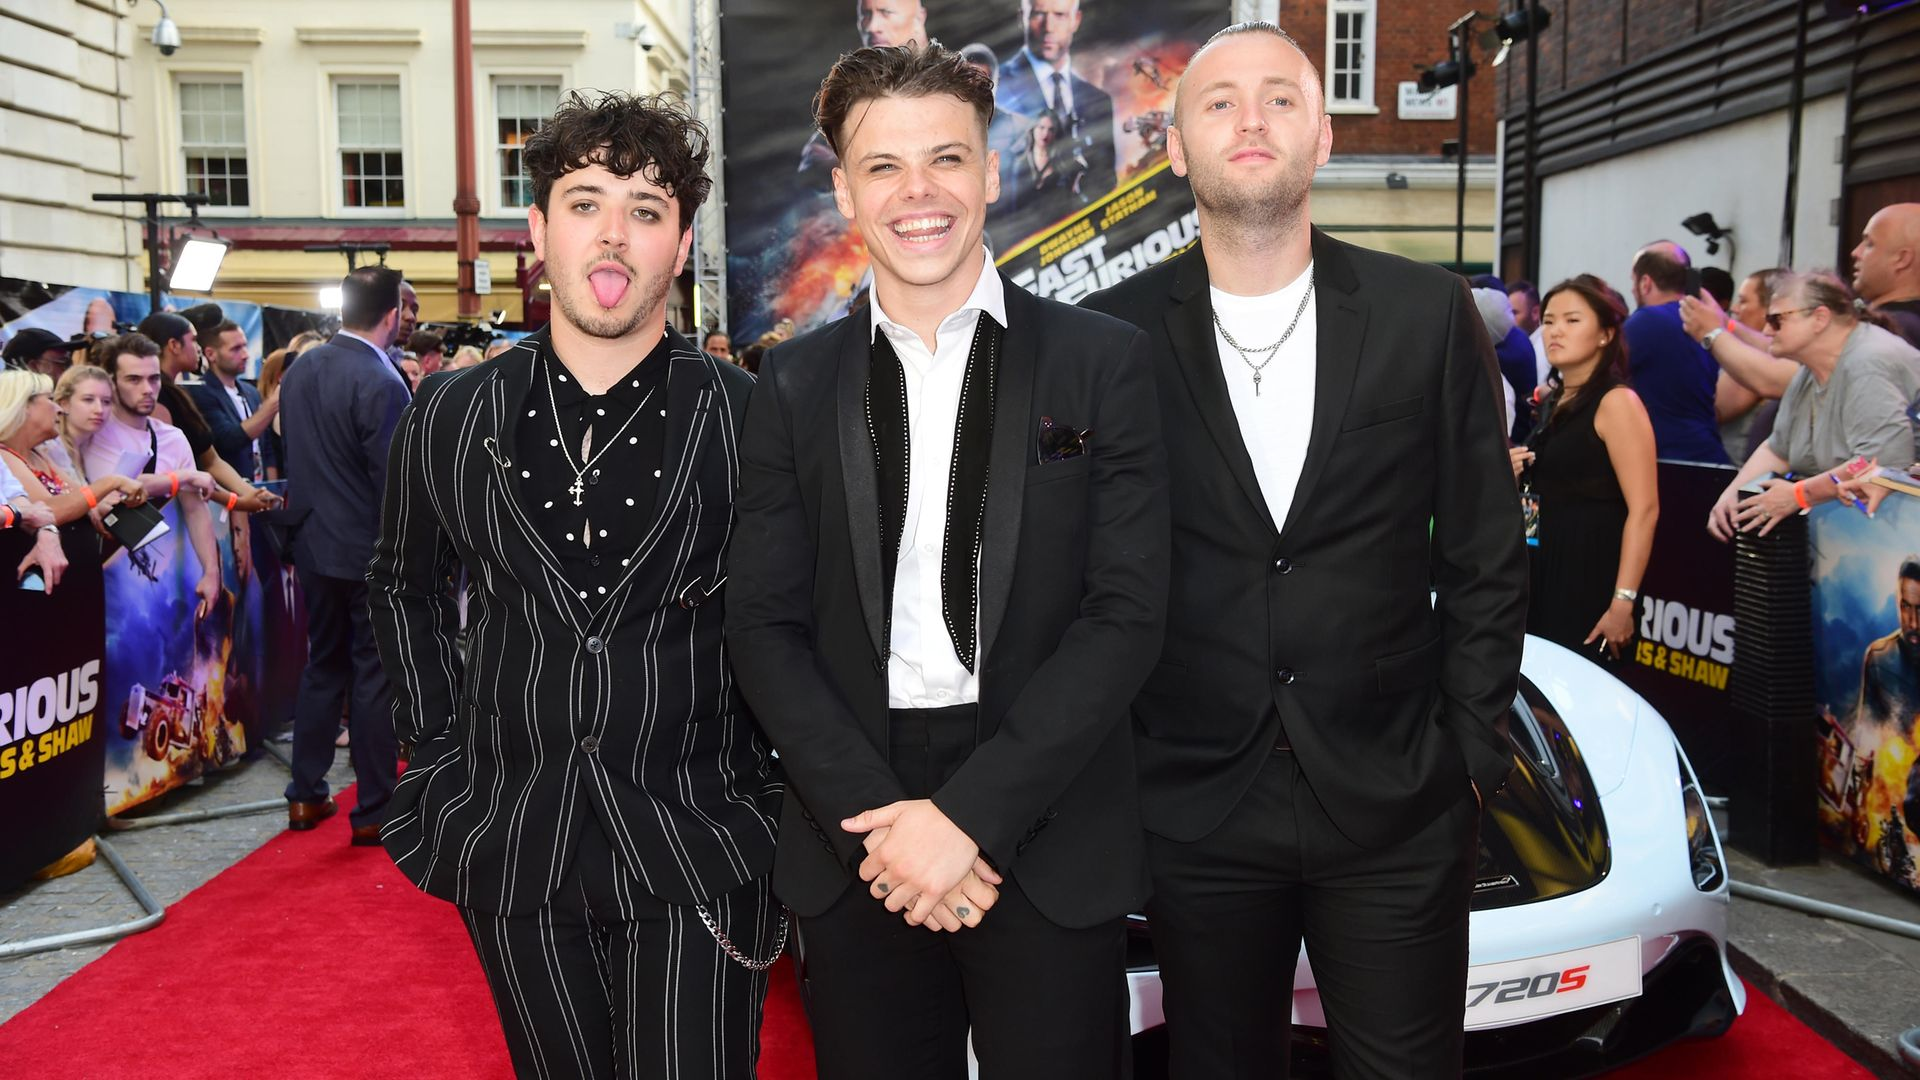 Yungblud (centre) attending a special screening of Fast & Furious - Credit: PA